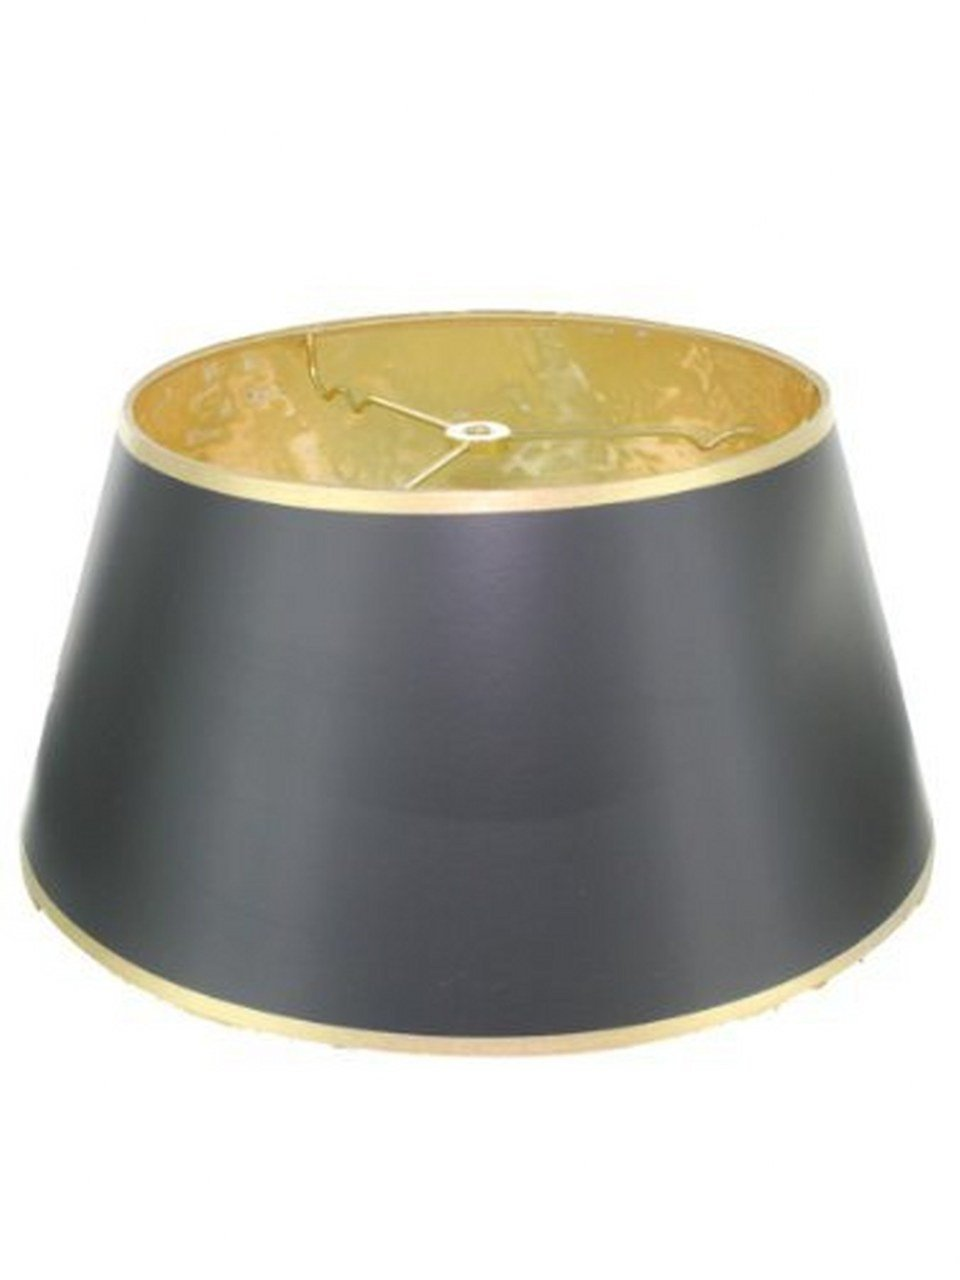 Upgradelights Black with Gold Shallow Oval 12 Inch Vintage Bouillotte Style Lampshade (Black with Gold)